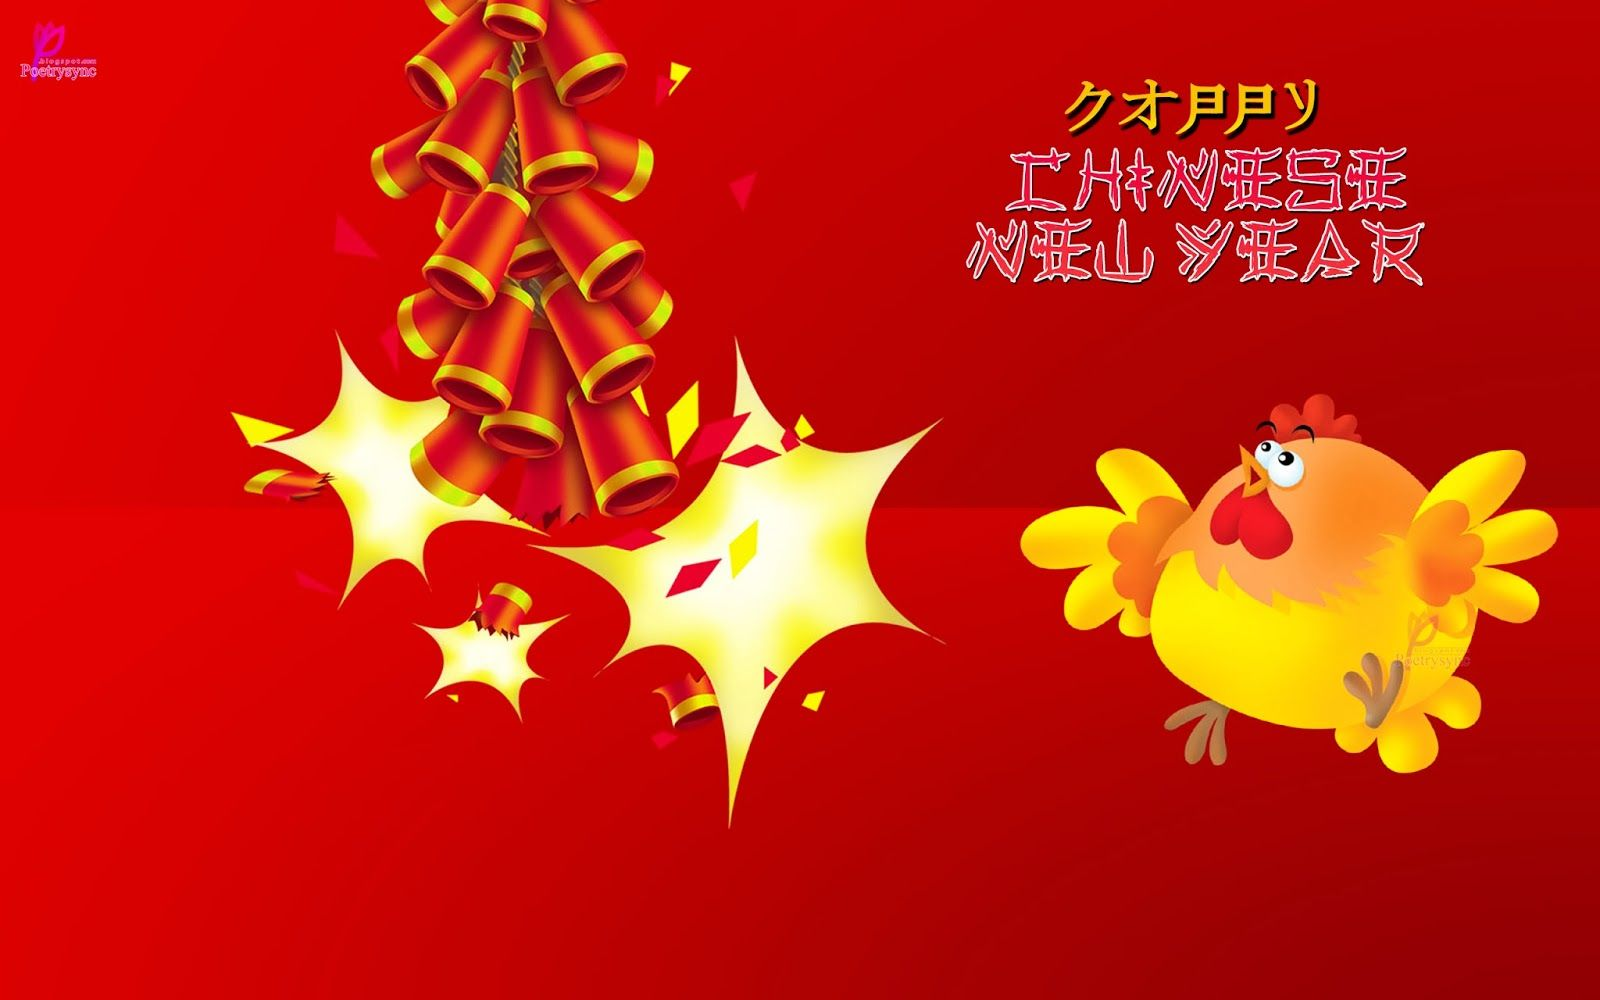 Chinese new year wishes image wallpaper happy lunar new year card chinese new year wishes image wallpaper happy lunar new year card tet new year image happy m4hsunfo